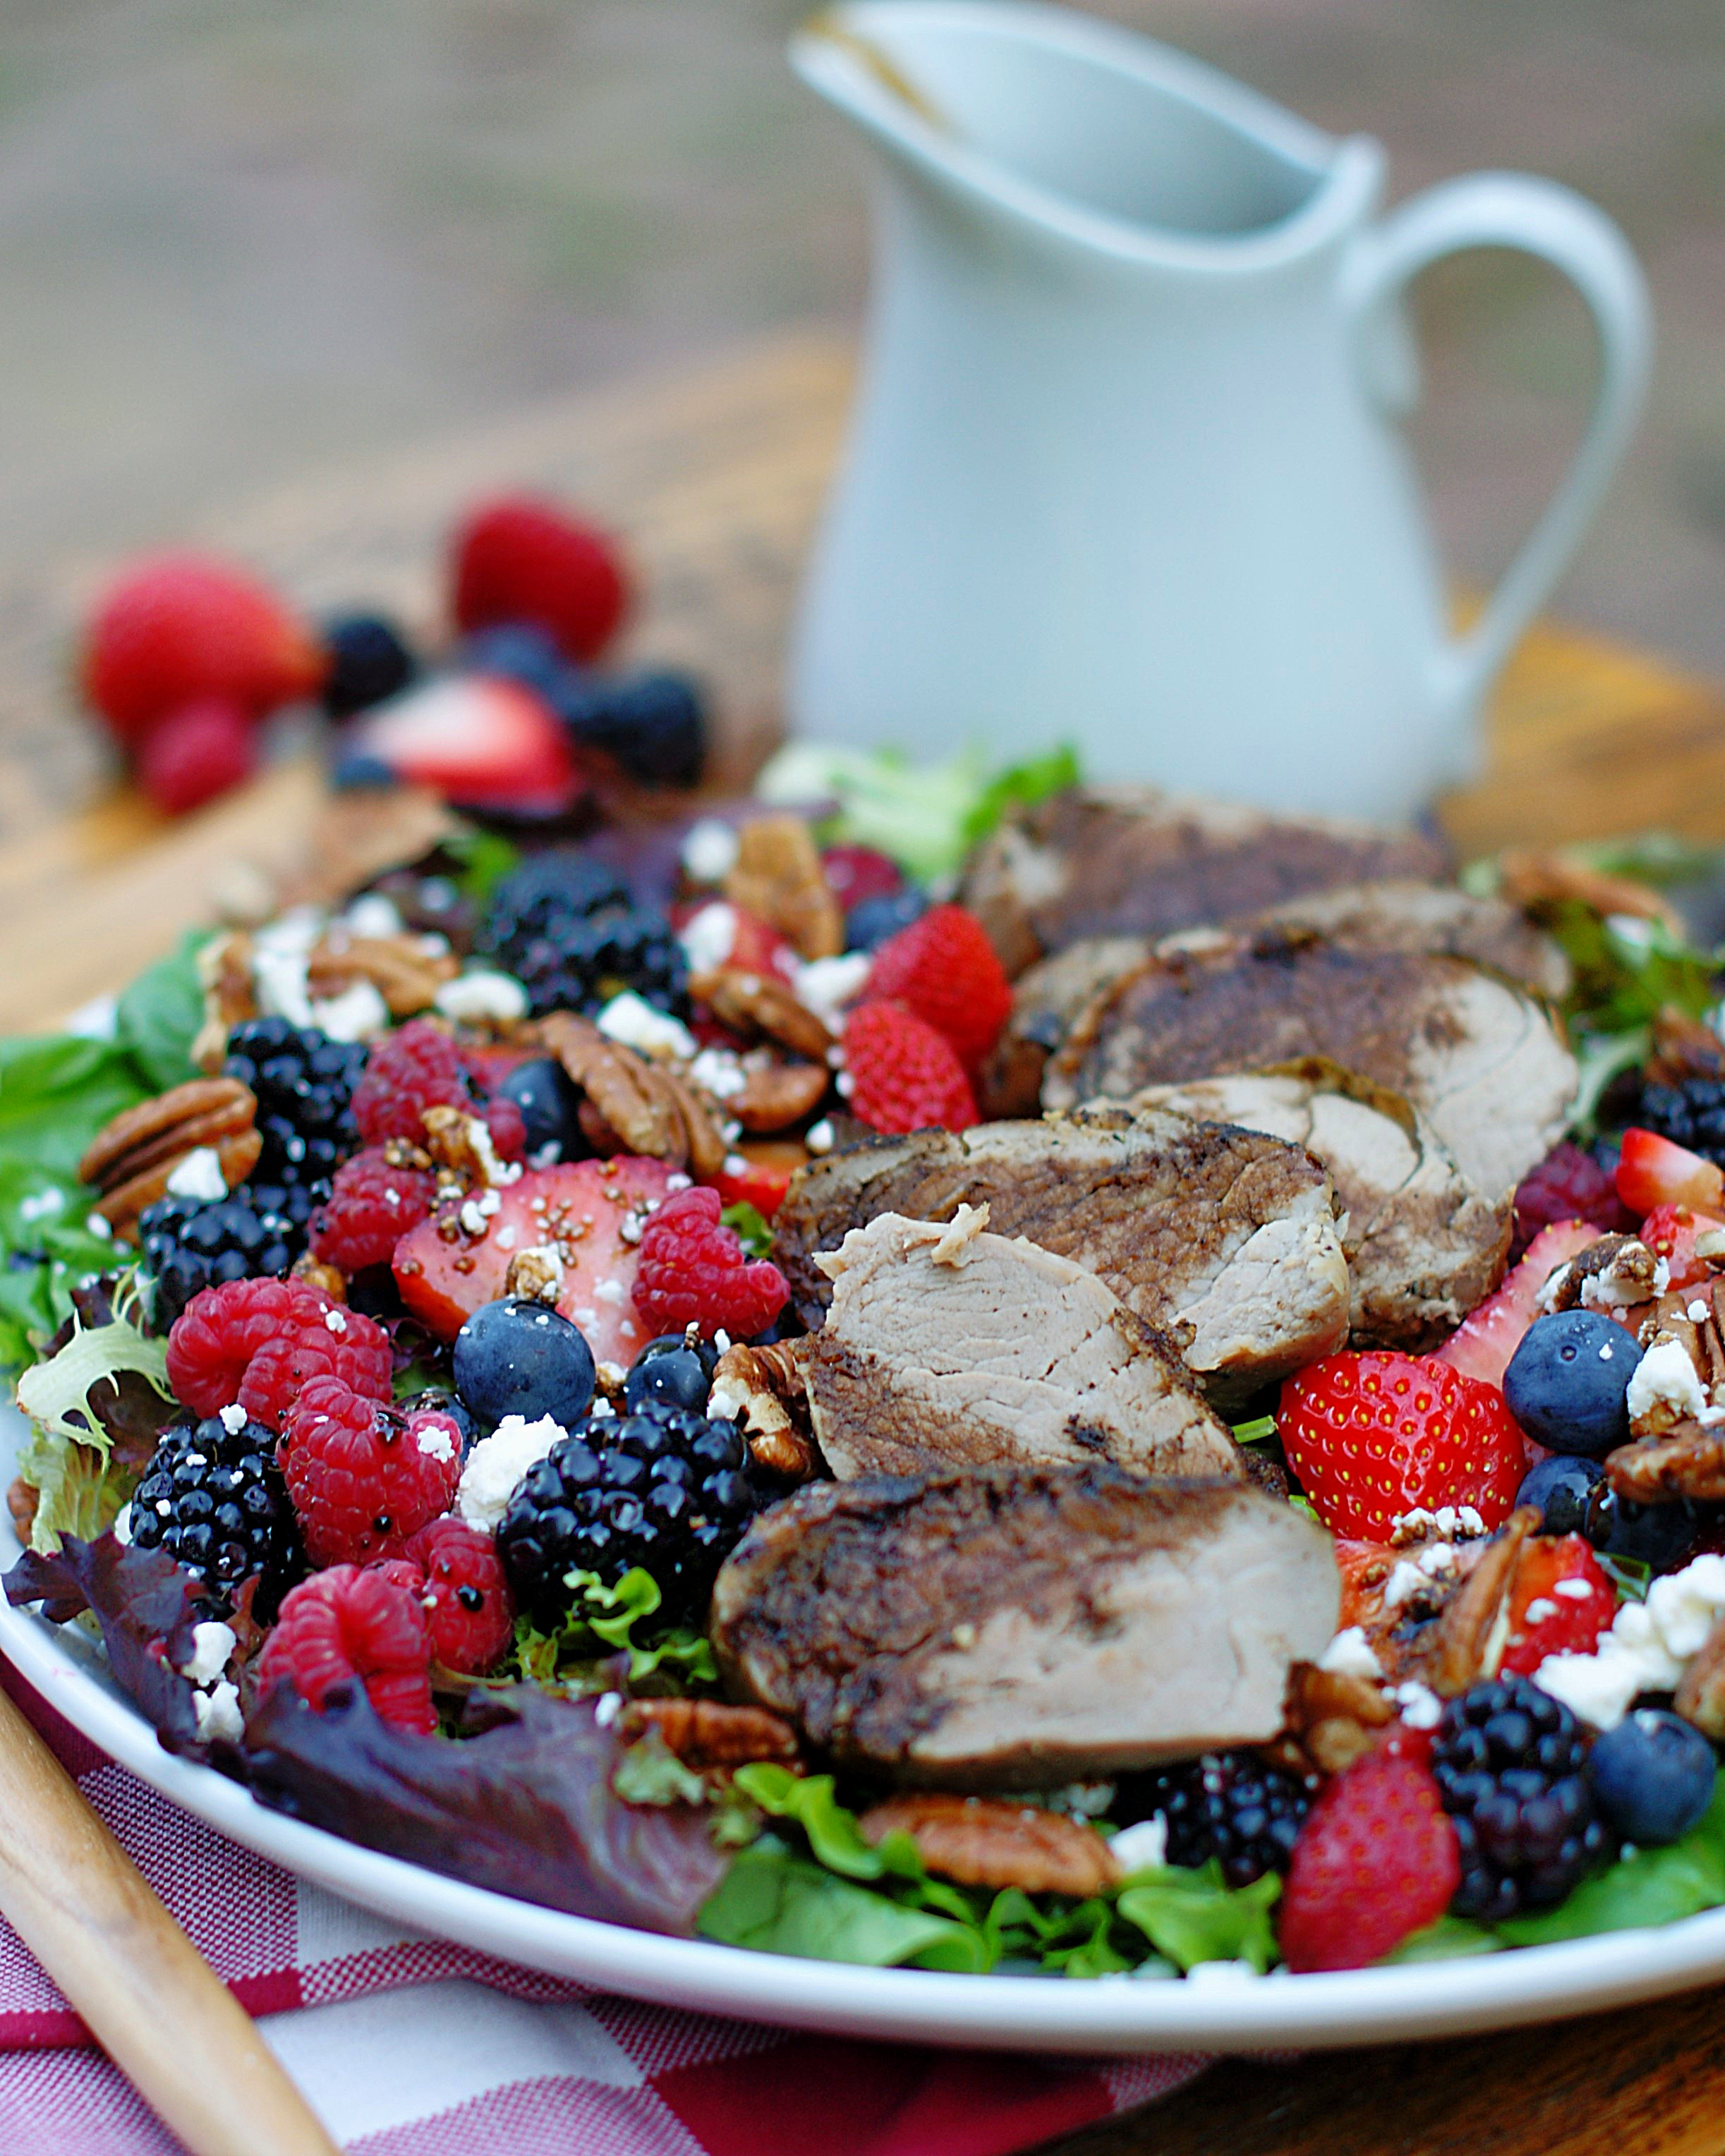 Berry Salad with cherry balsamic dressing.